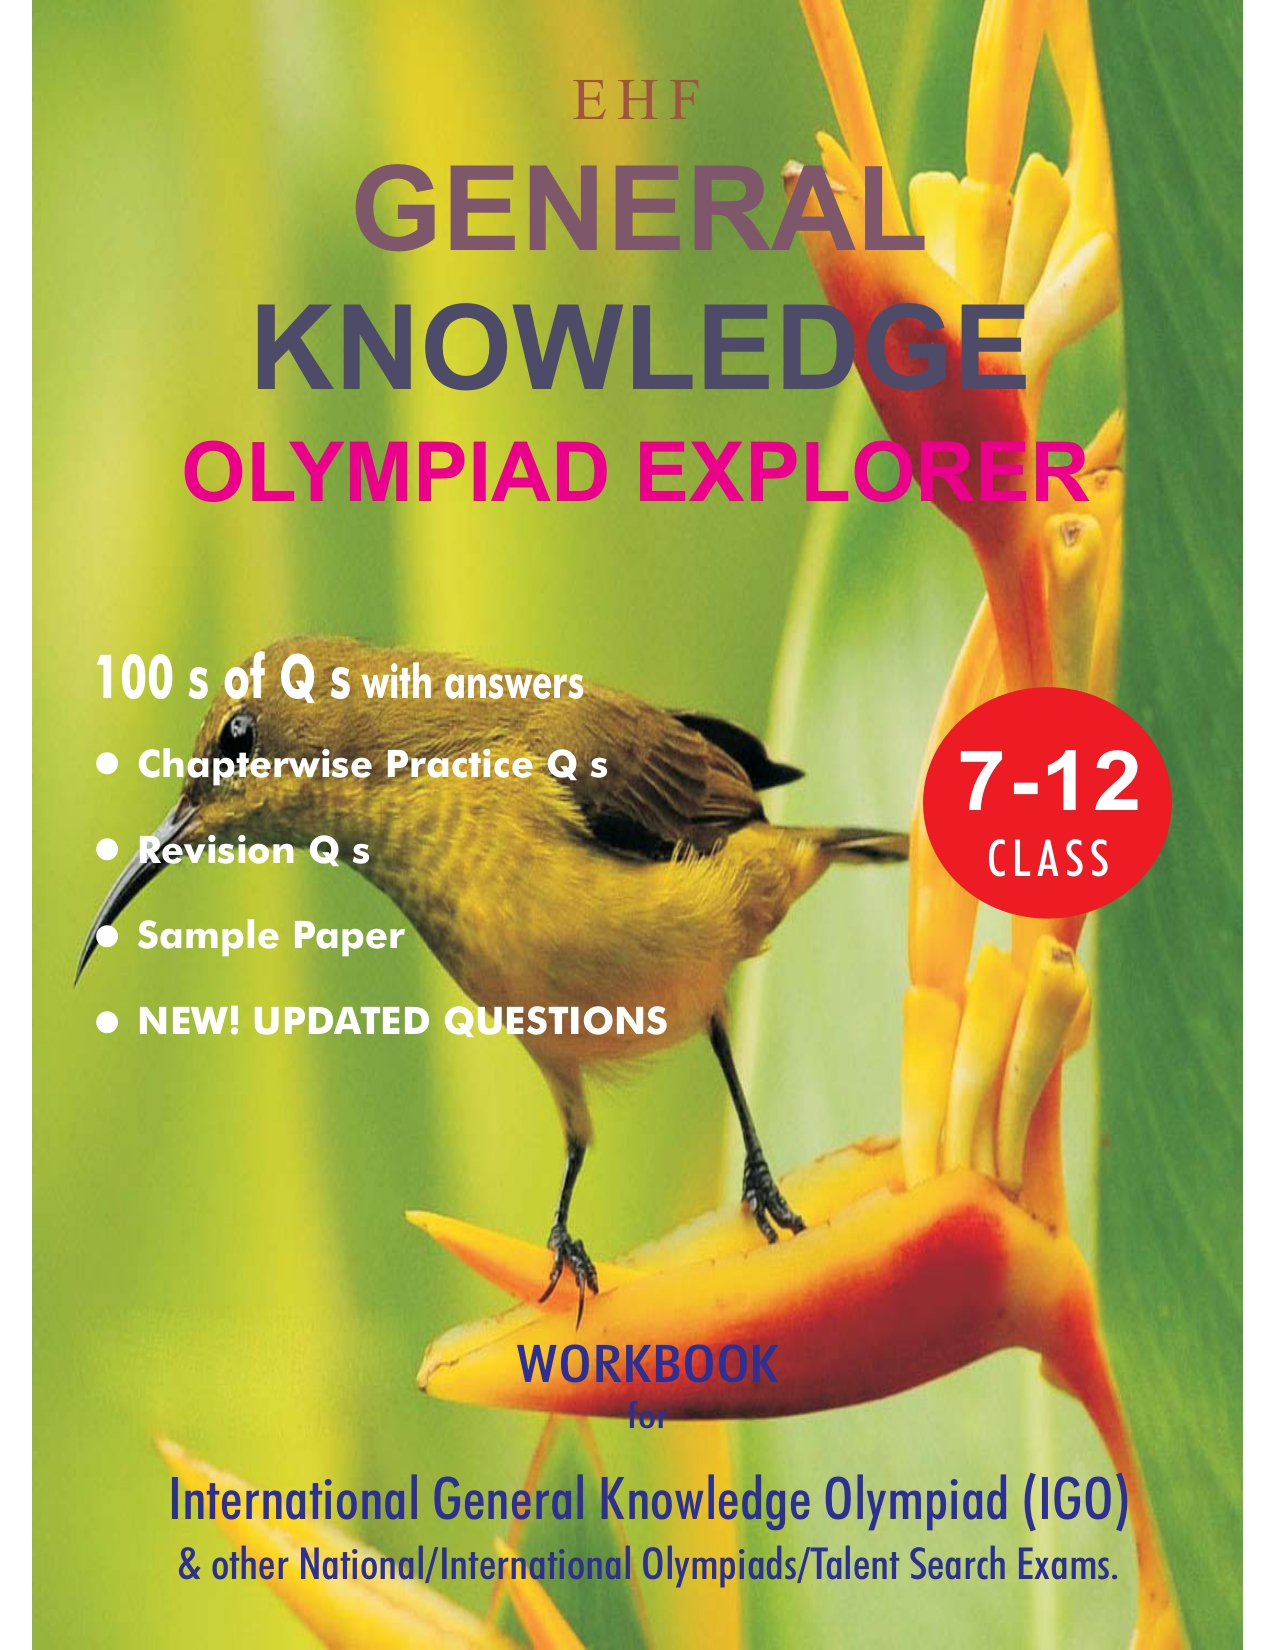 General Knowledge Olympiad Explorer Class 7 to 12 (English, Paperback, Dr. Sandeep Ahlawat)